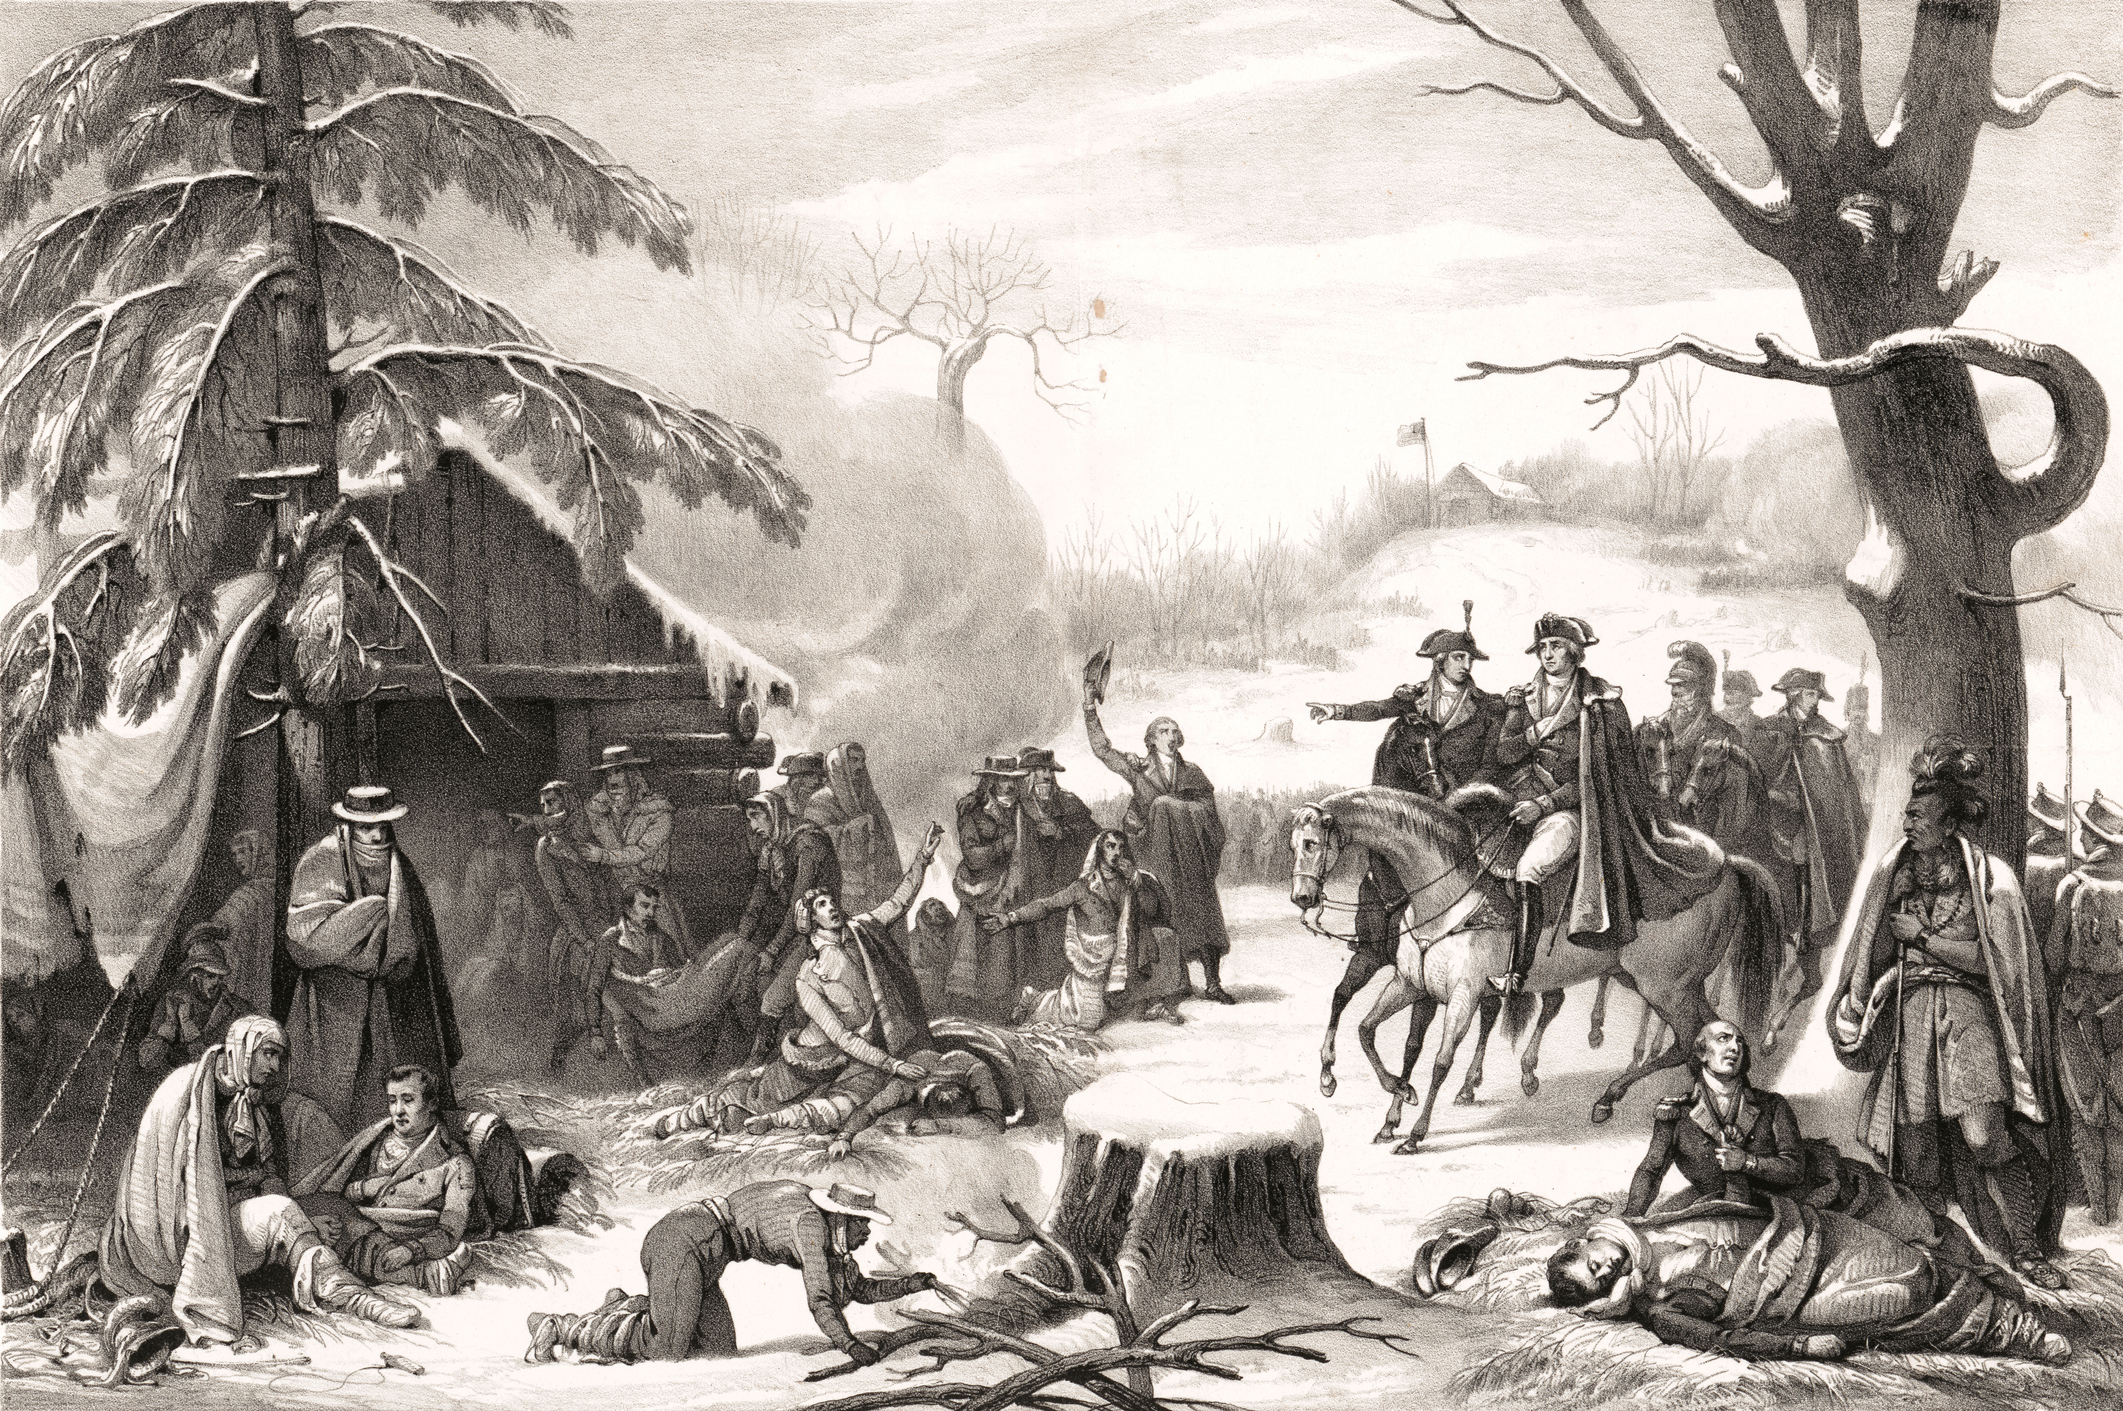 George Washington and Lafayette on horseback visiting injured soldiers at Valley Forge during the American Revolution, 1777.